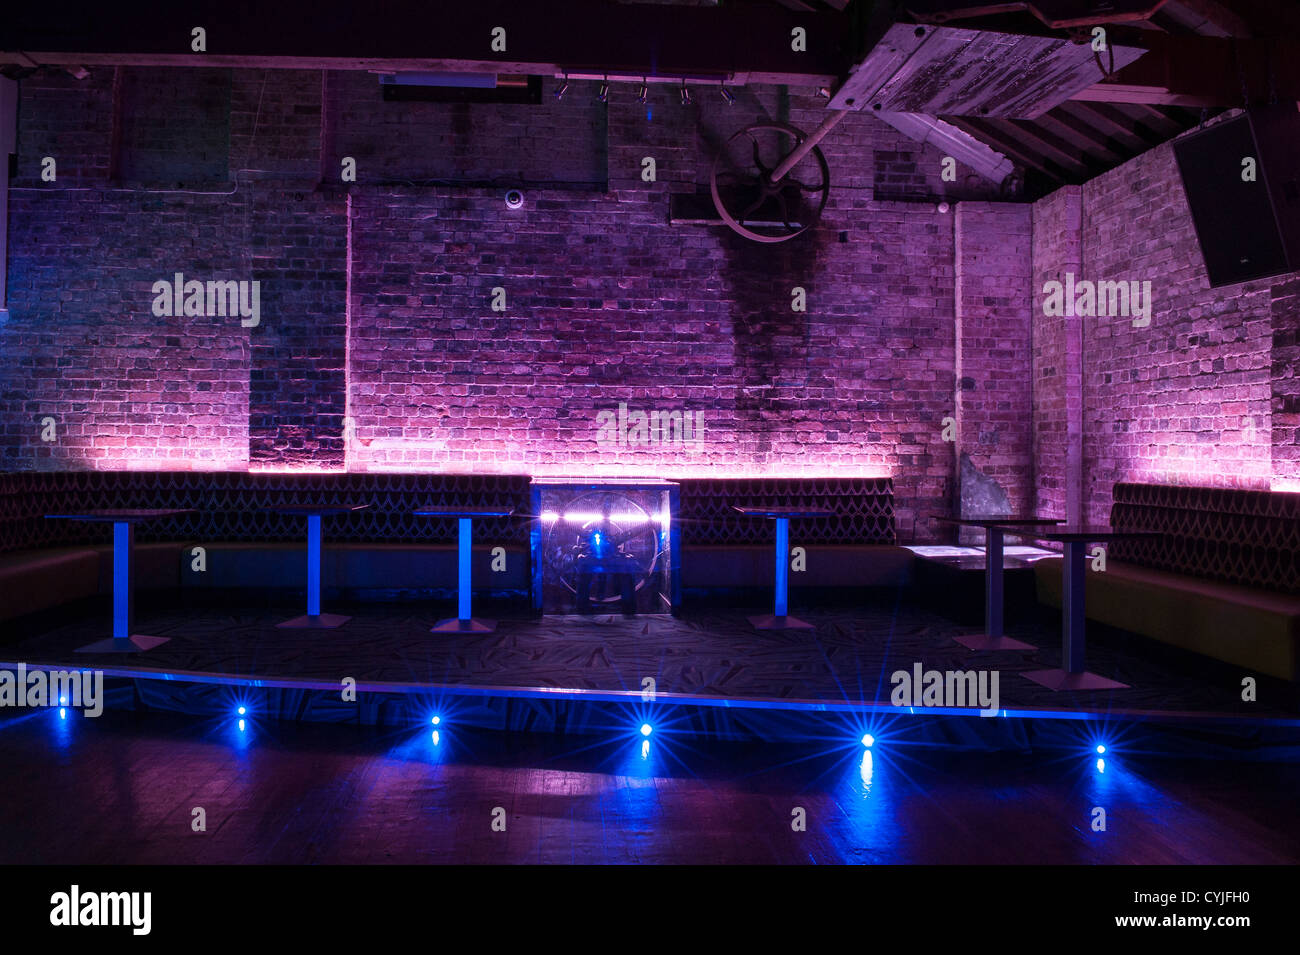 Night club dance floor and seating interior design stock for Disco night club